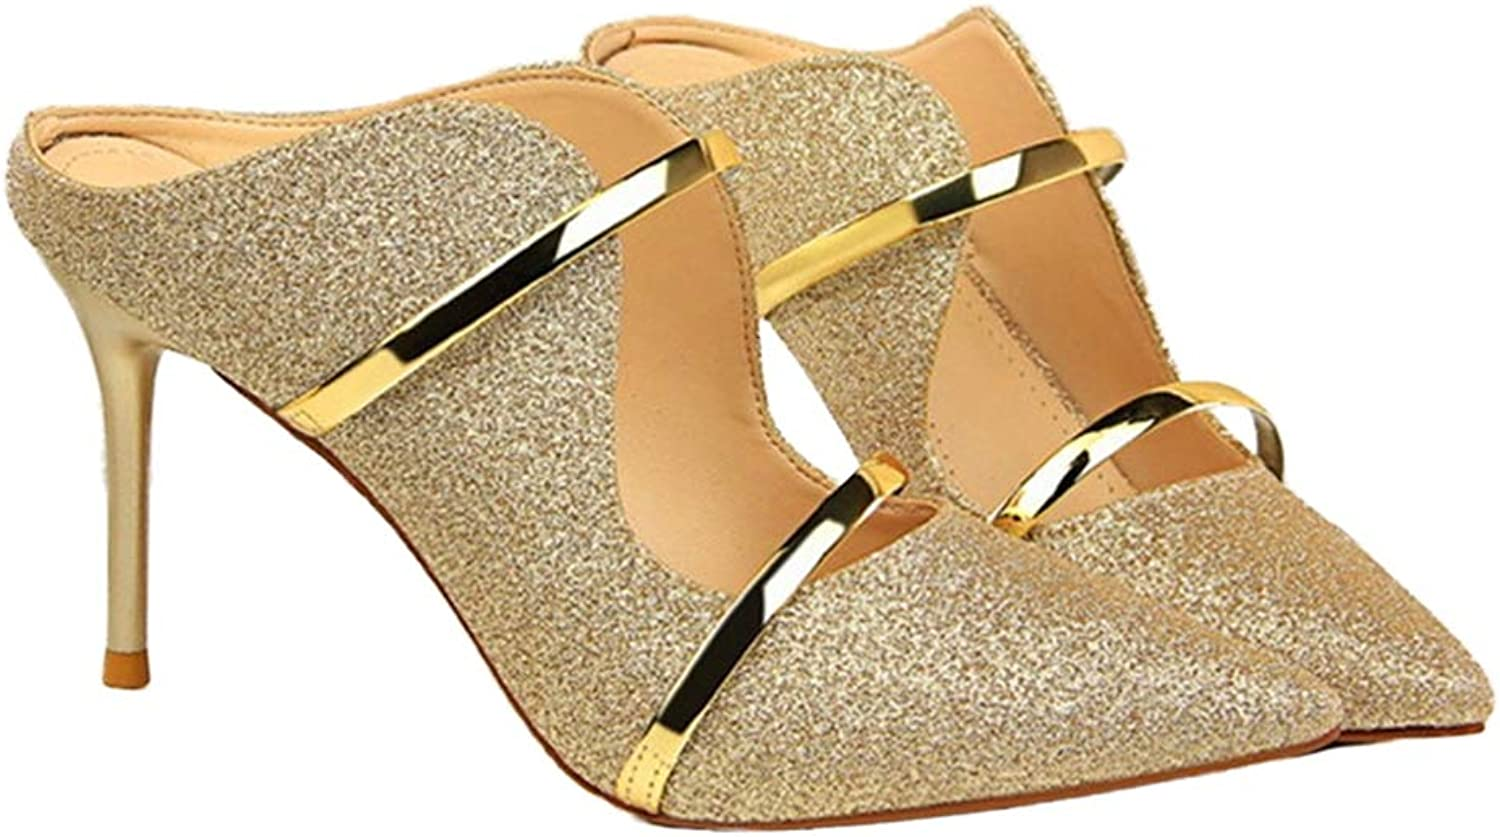 Sam Carle Women Pumps, Fashion Sequined Pointed Toe Shallow High Thin Heel Party shoes